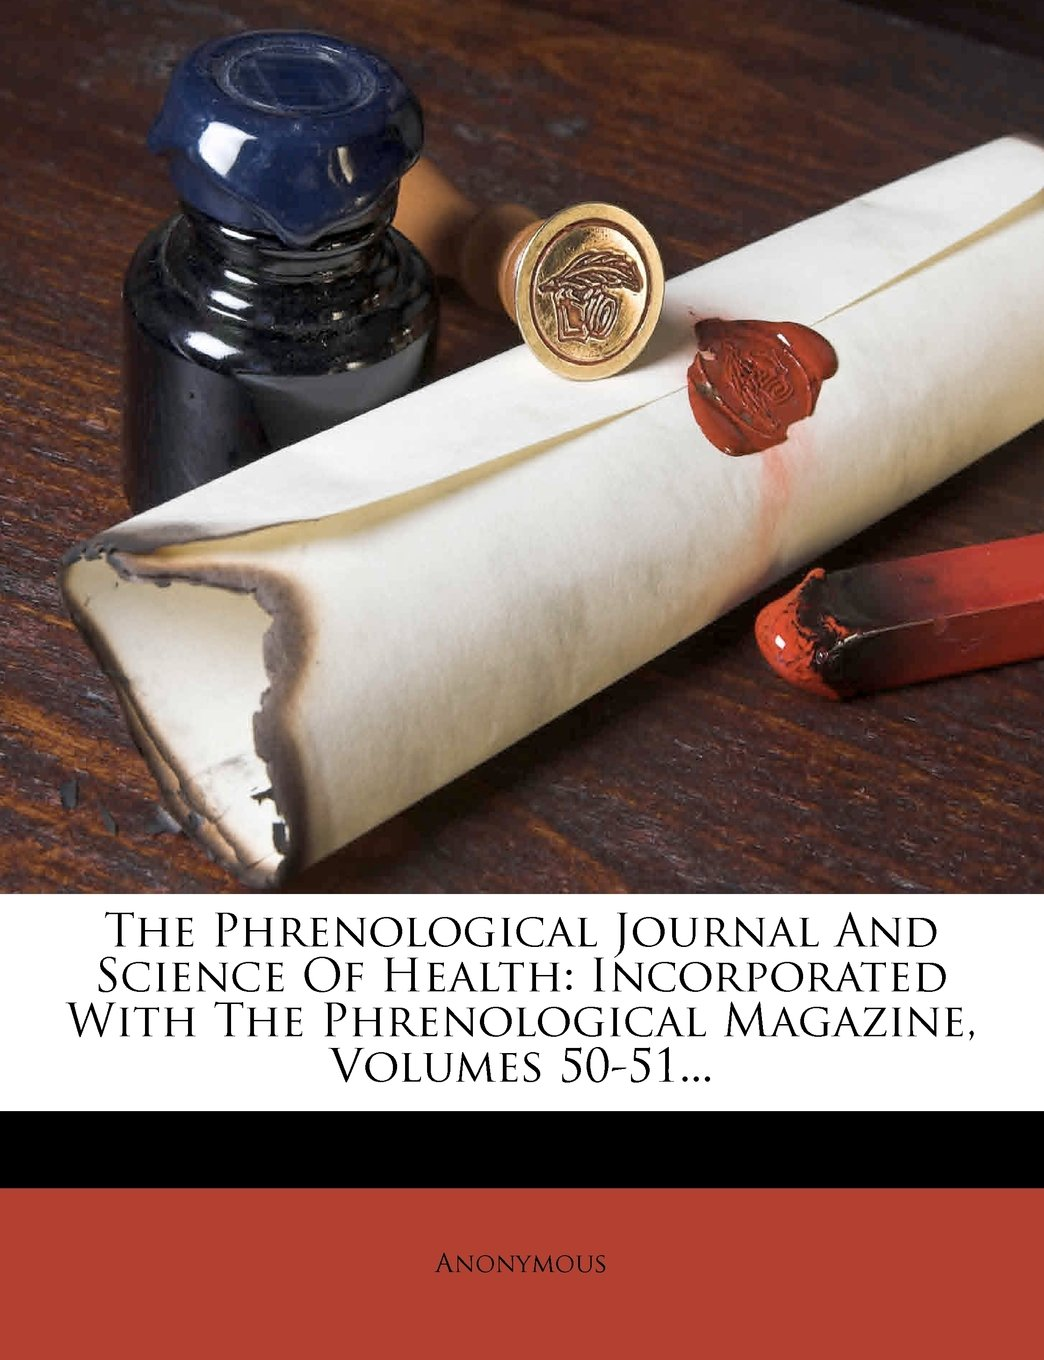 Download The Phrenological Journal And Science Of Health: Incorporated With The Phrenological Magazine, Volumes 50-51... ebook